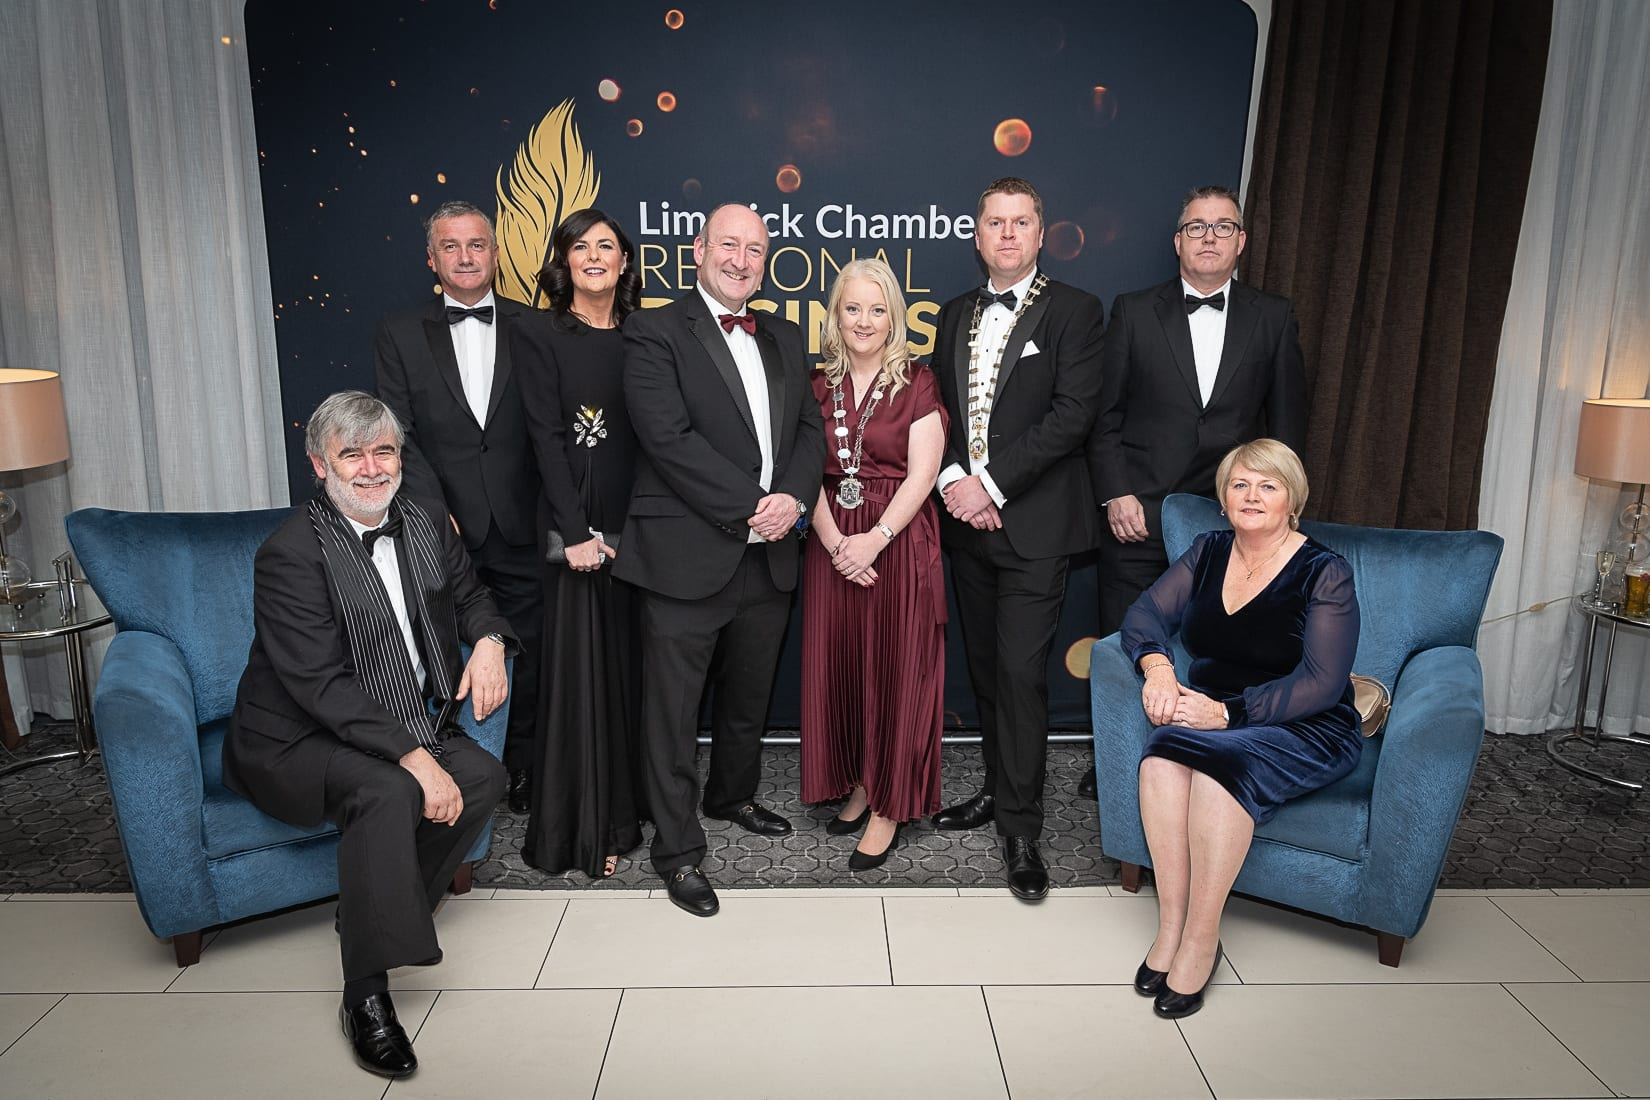 No repro fee-Limerick Chamber President's Dinner and Limerick Chamber Regional Business Awards 2019 which was held in the Strand Hotel on Friday 15th November /  Limerick Council  Sponsors/  - From Left to Right: Kieran Lahane, Pat Fitzgerald, Mary and Pat Daly, Deputy Mayor Sarah Kiely, Eoin Ryan - President Limerick Chamber,  Vincent Murray and Deirdre Moloney all from Limerick Council.  Photo credit Shauna Kennedy